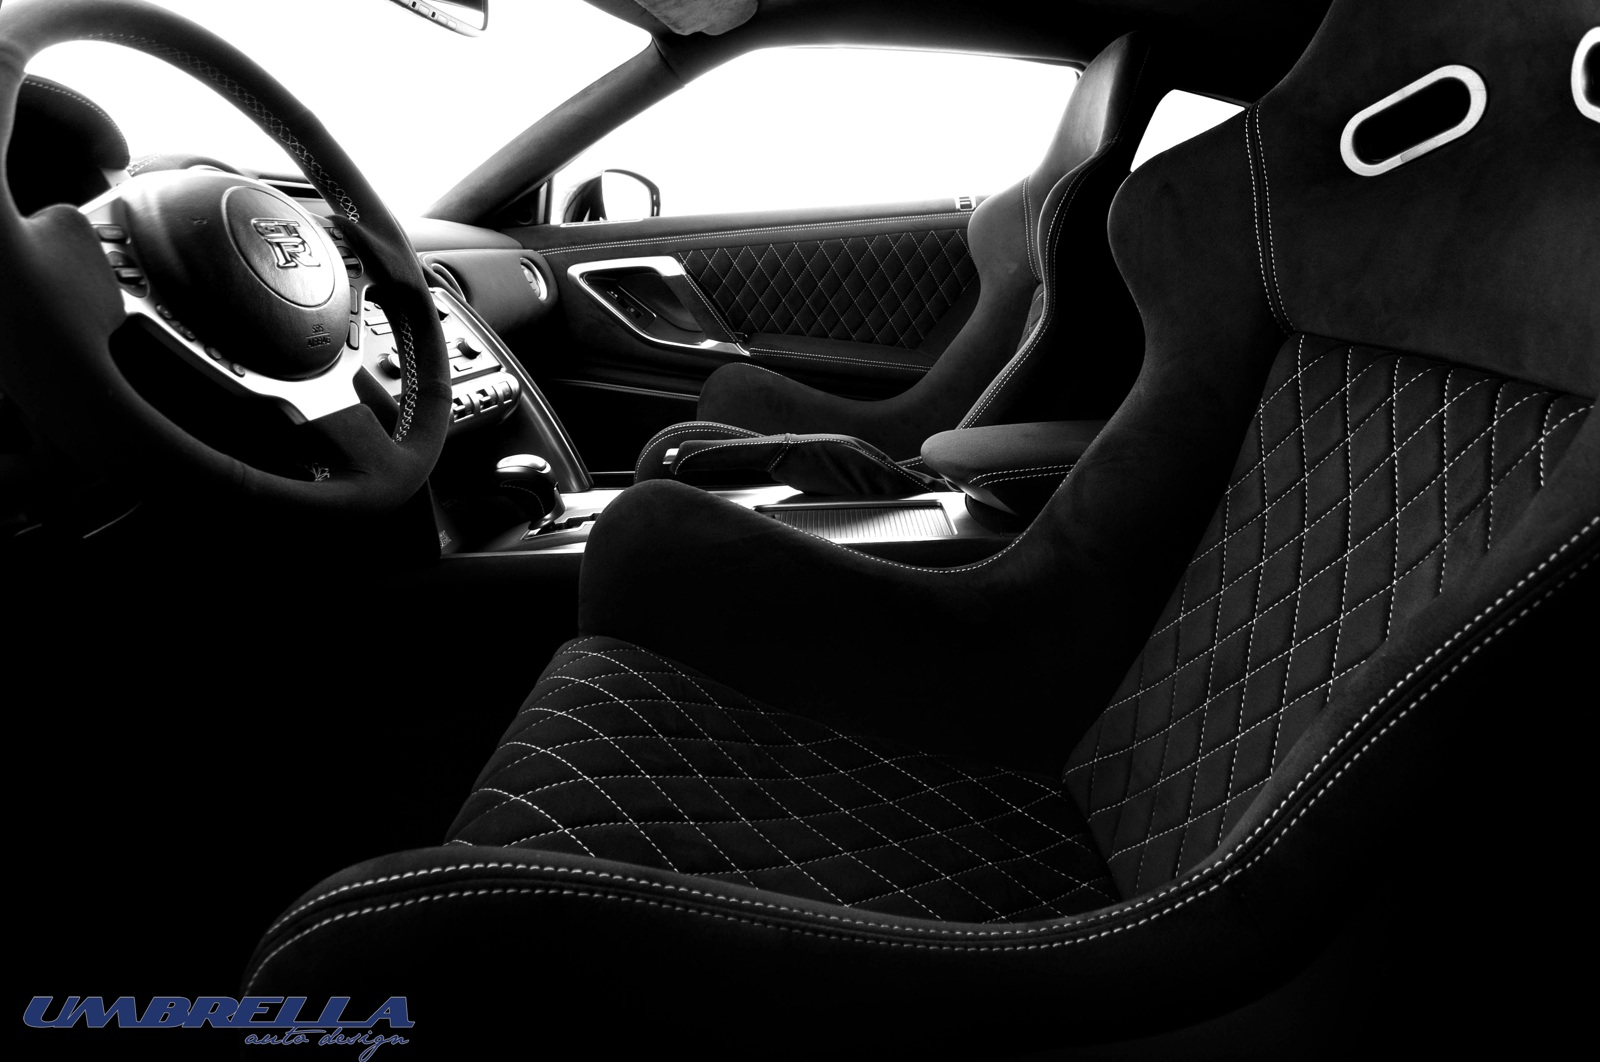 Nissan nissan gtr interior : Umbrella Auto Plays With the Nissan GT-R's Interior - autoevolution